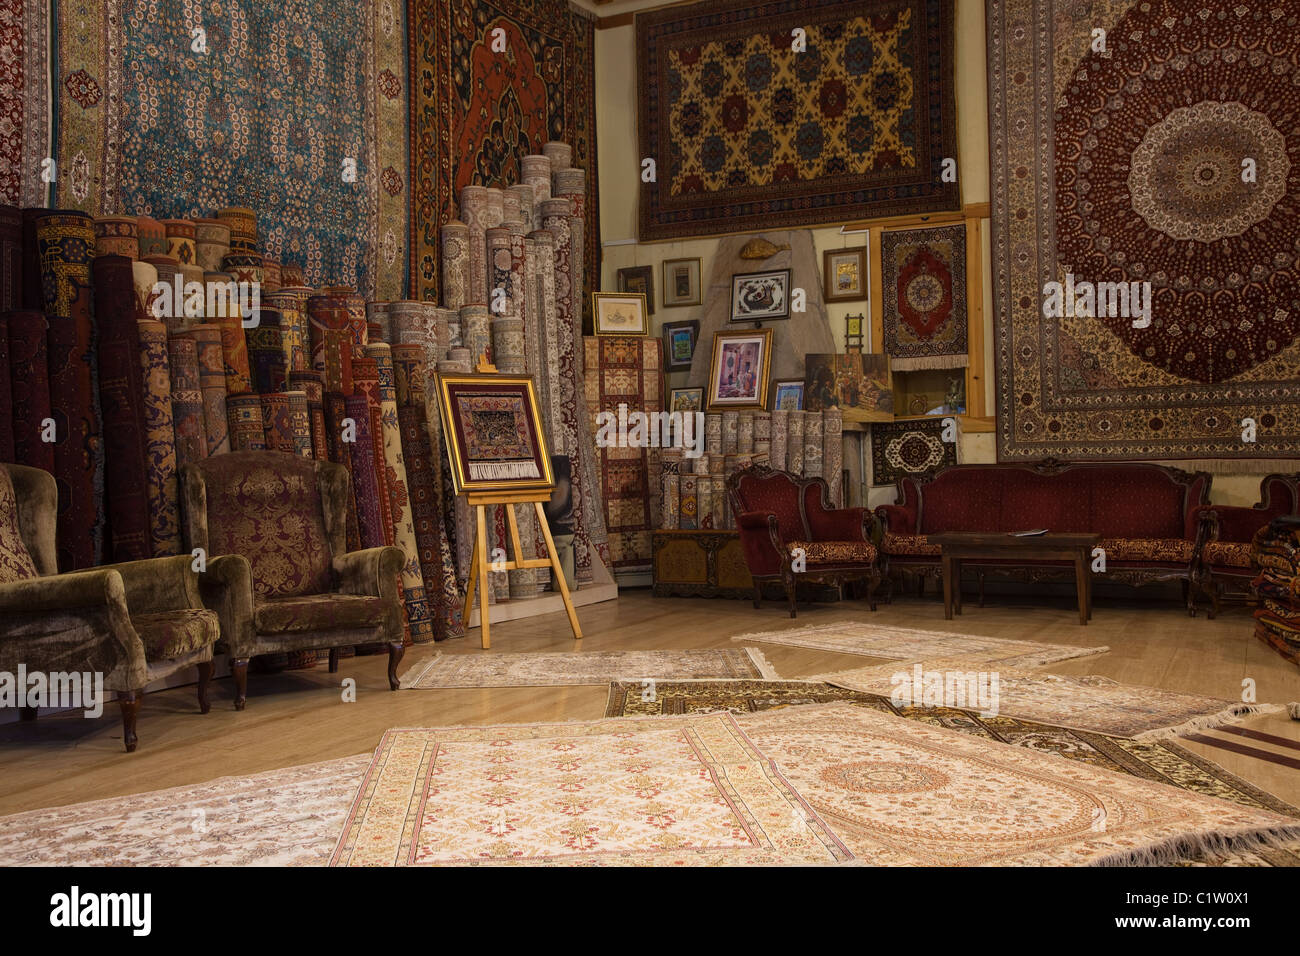 Interior Of A Carpet Bazaar Selling Turkish Carpets With Religuious And Traditional Motifs Antalya